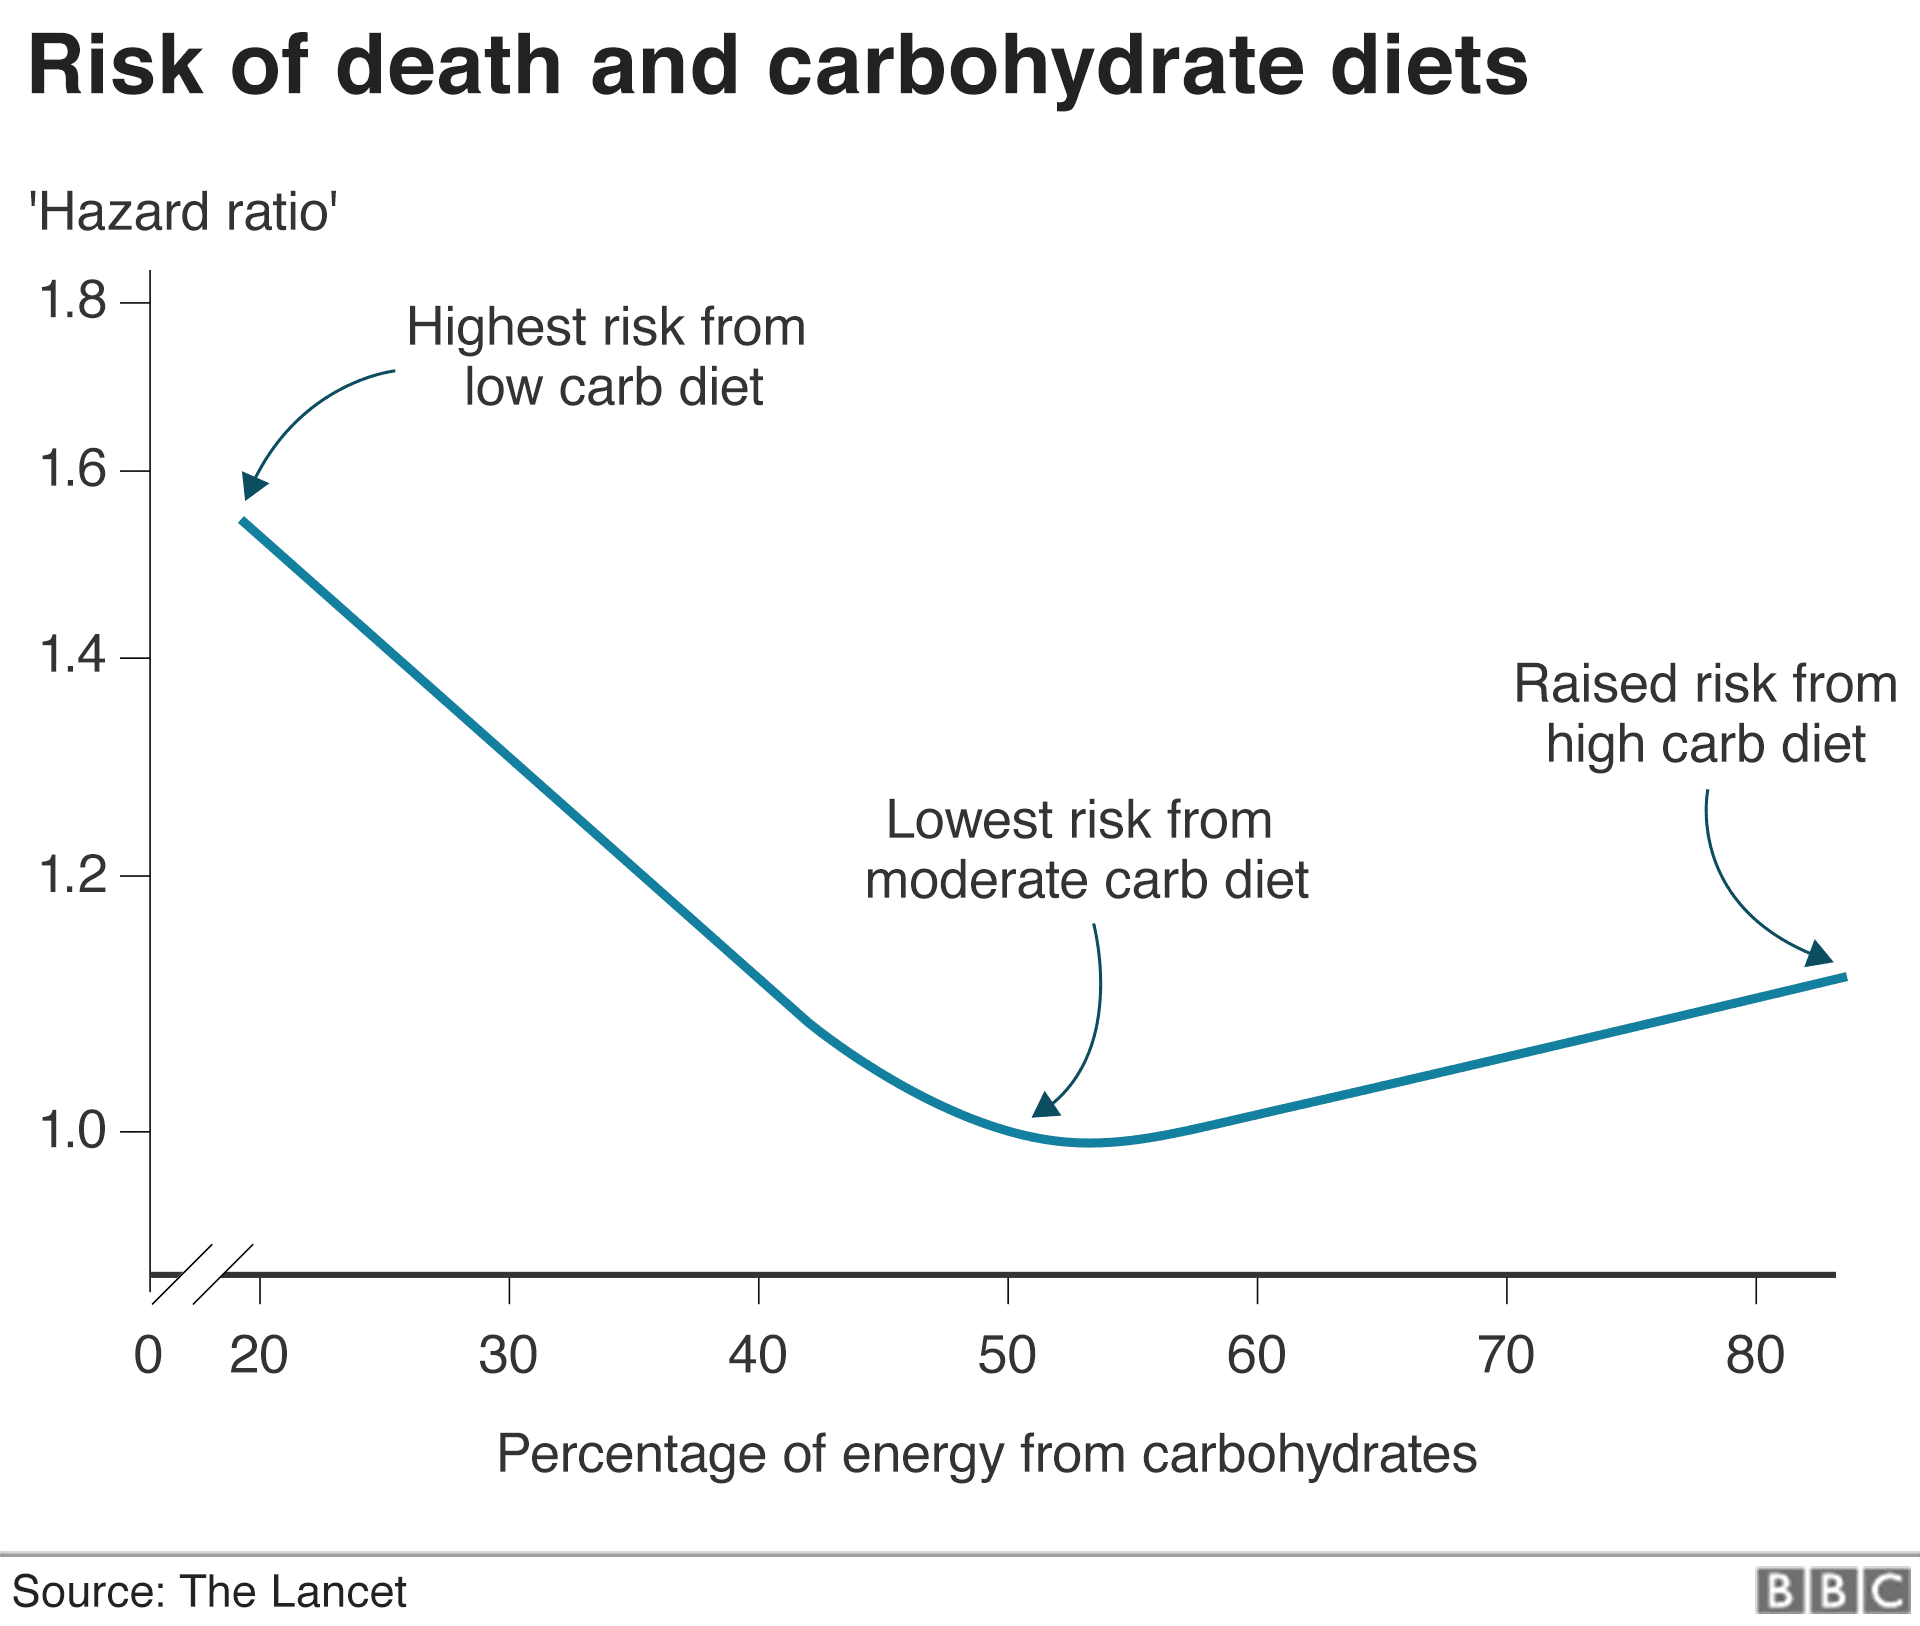 why are low carb diets appealing